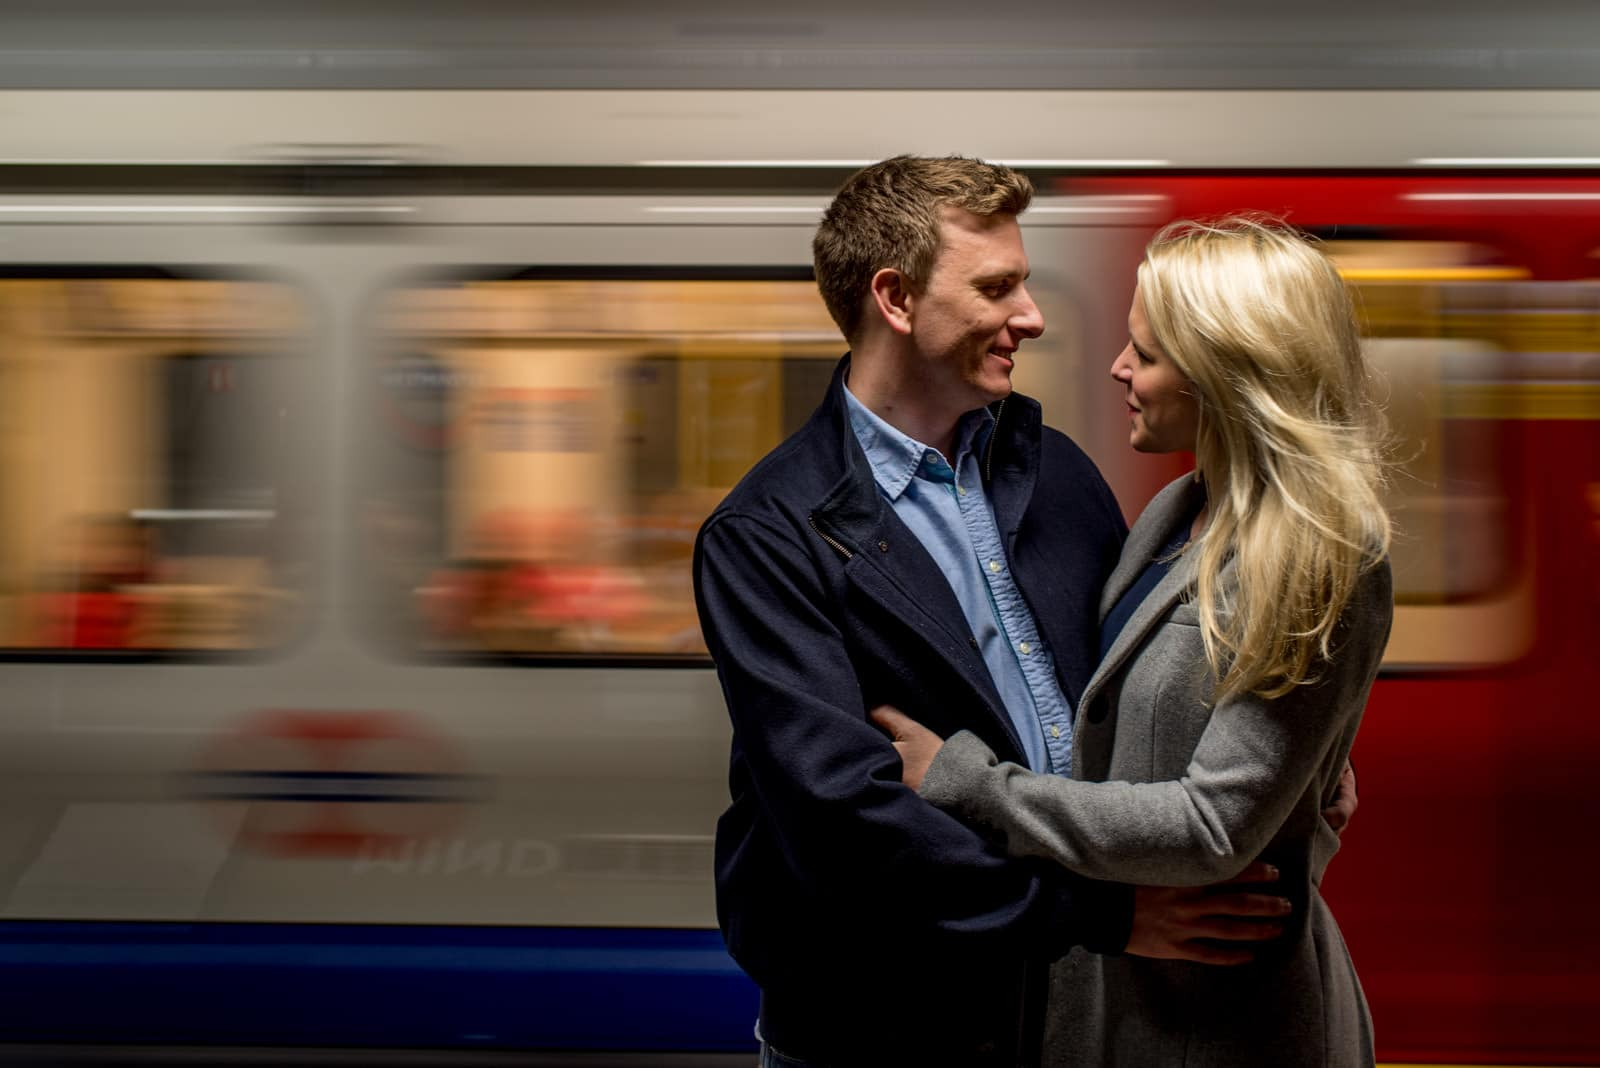 Couple engagement photo in front of moving train on London Underground